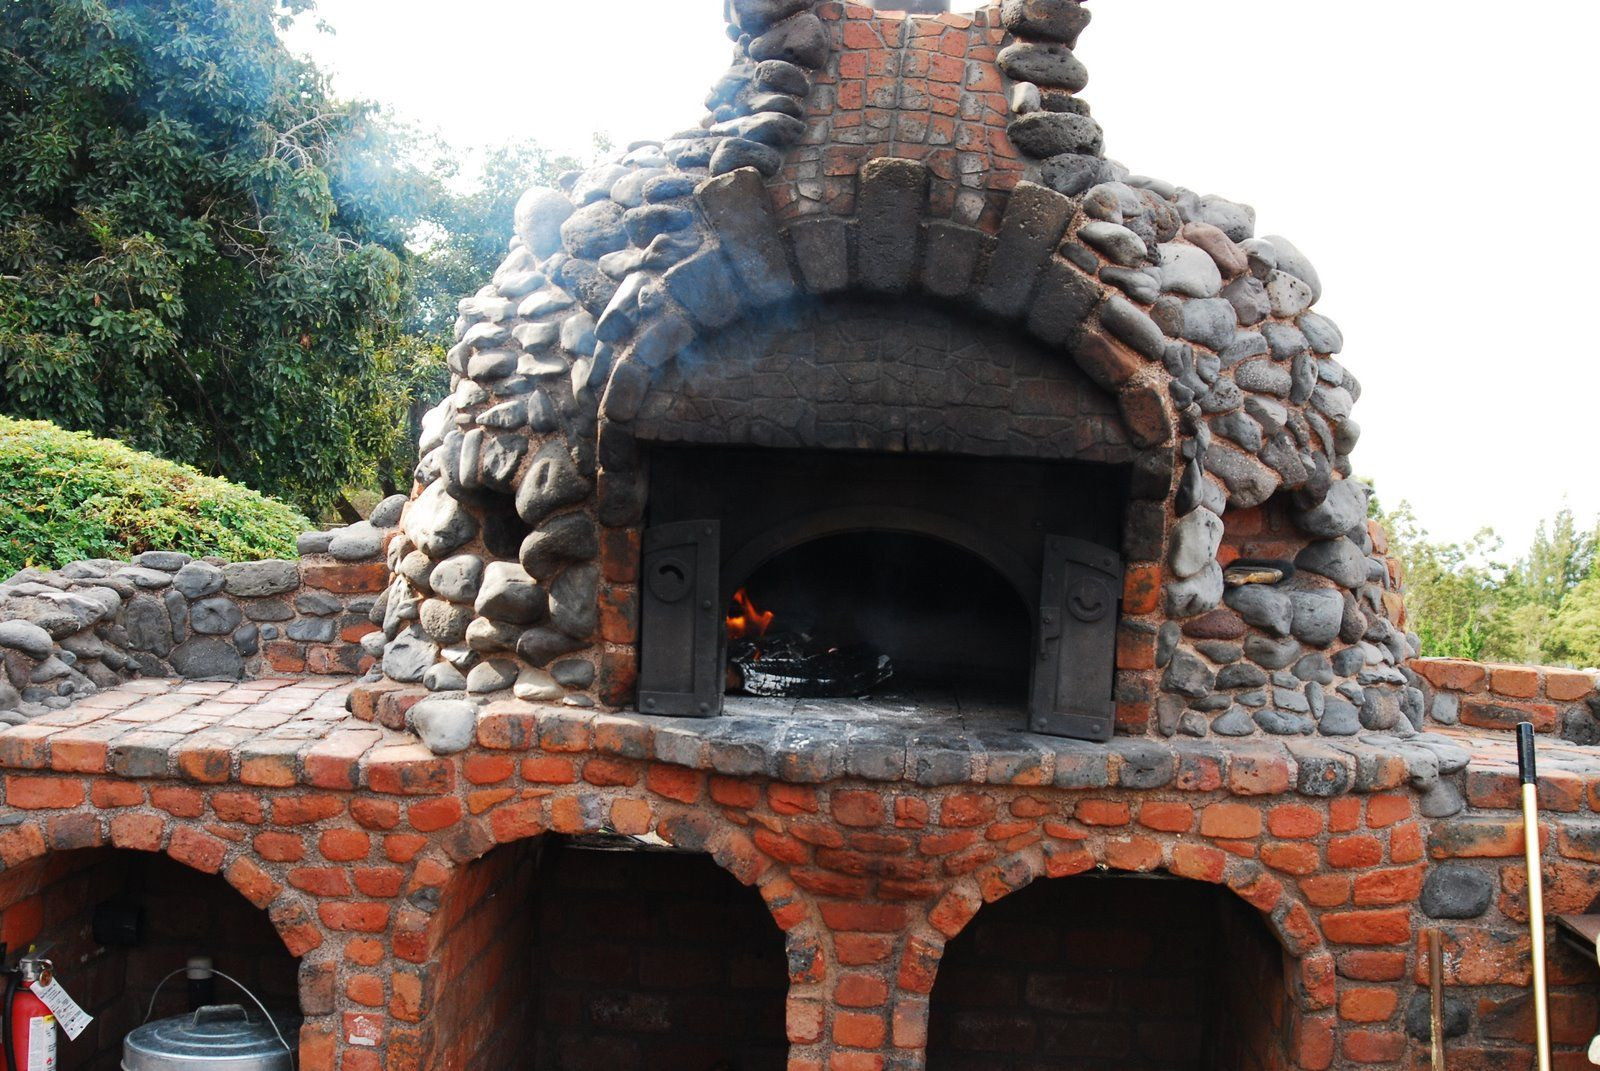 What An Amazing Outdoor Pizza Oven Made Out Of River Rock And Red Brick Kula Lodge Maui